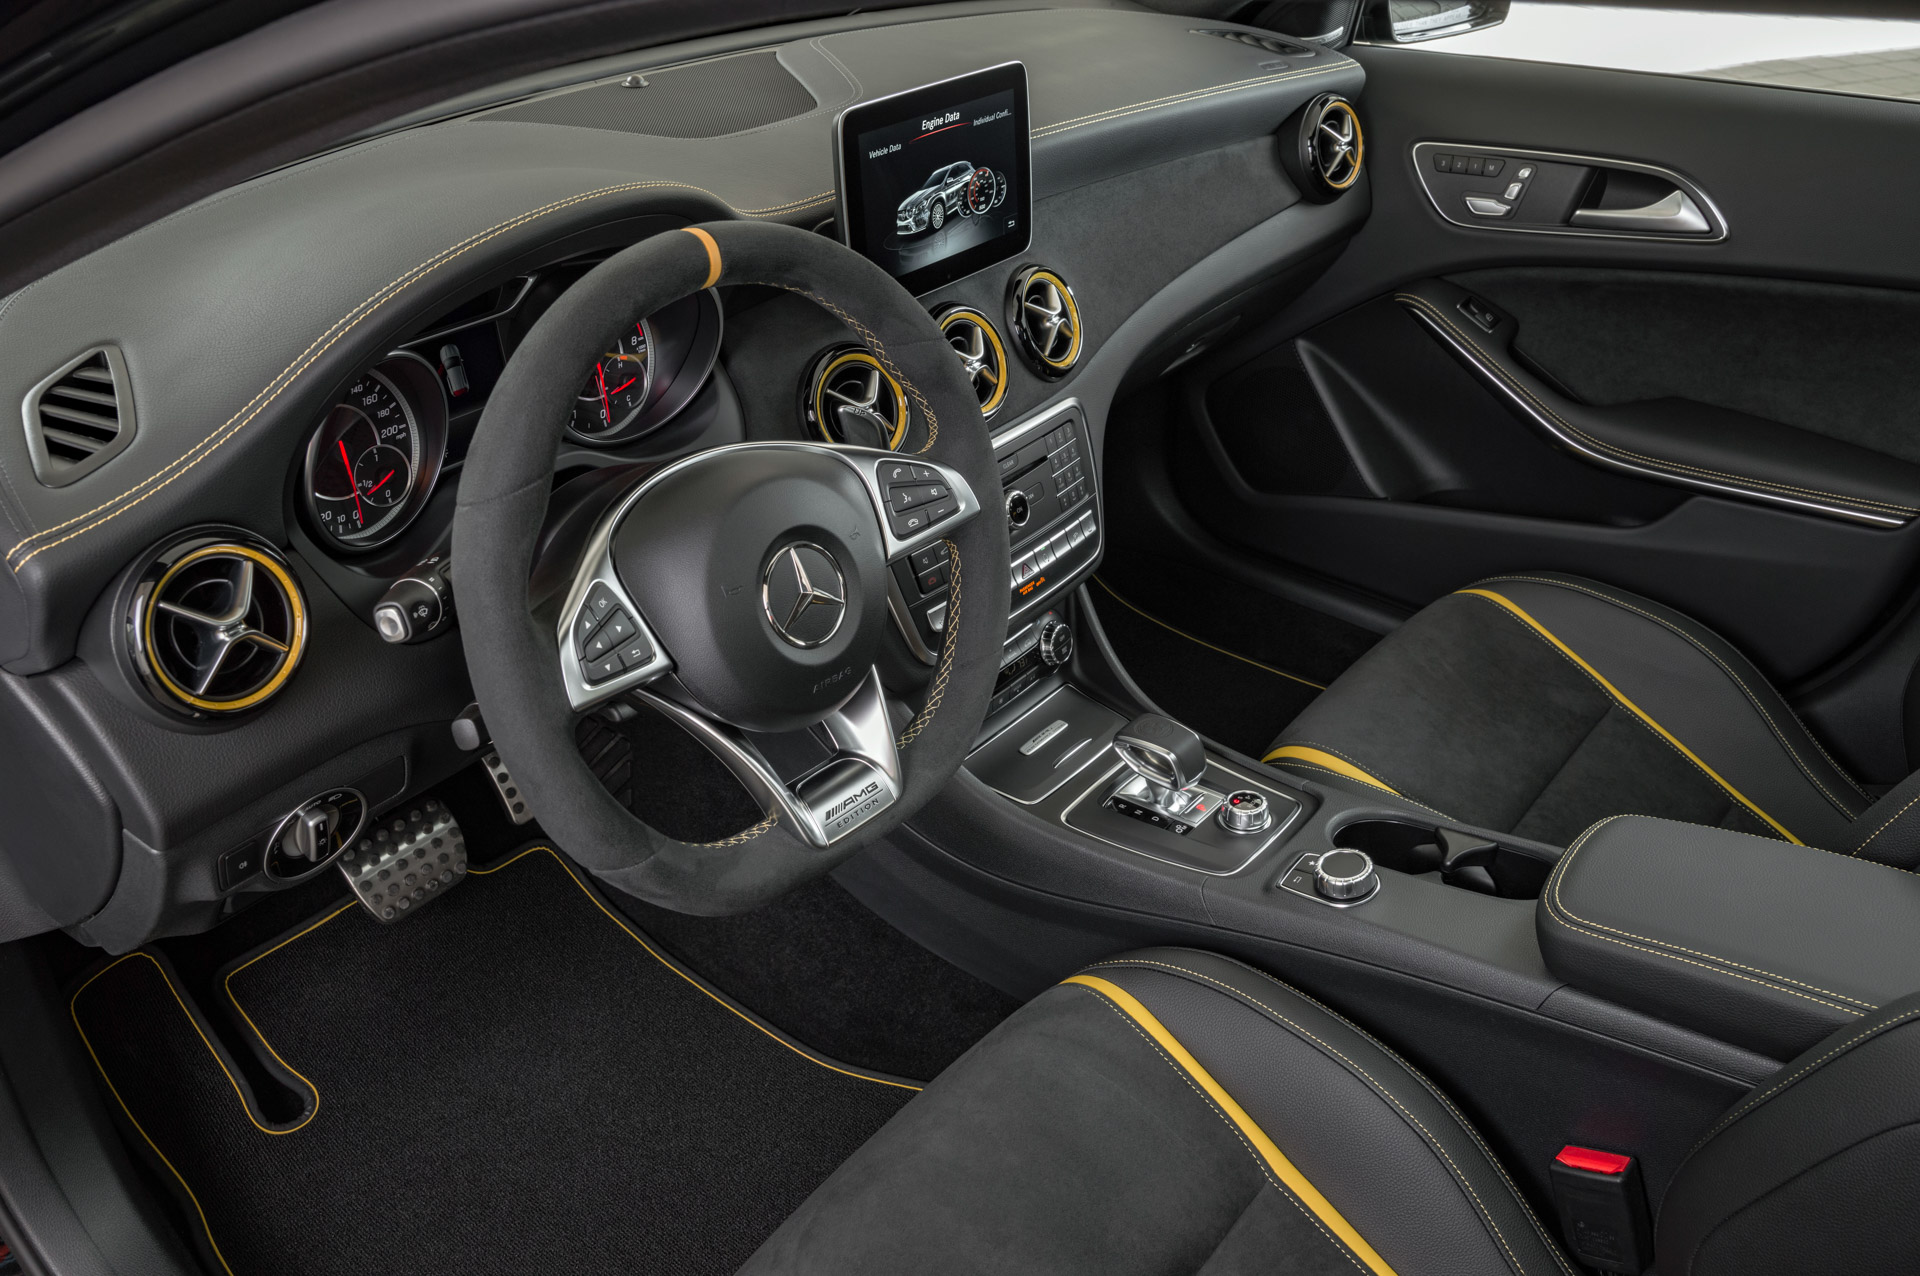 Mercedes-Benz AMG GLA 45 4MATIC Yellow Night Edition, cosmosschwarz, Innenausstattung: ARTICO/Mikrofaser DINAMICA ;Kraftstoffverbrauch kombiniert: 7,4 /100 km, CO2-Emissionen kombiniert: 172 g/km Mercedes-Benz AMG GLA 45 4MATIC Yellow Night Edition, cosmos black, Interior: ARTICO/microfibre DINAMICA; Fuel consumption combined:  7.4 l/100 km; Combined CO2 emissions: 172 g/km